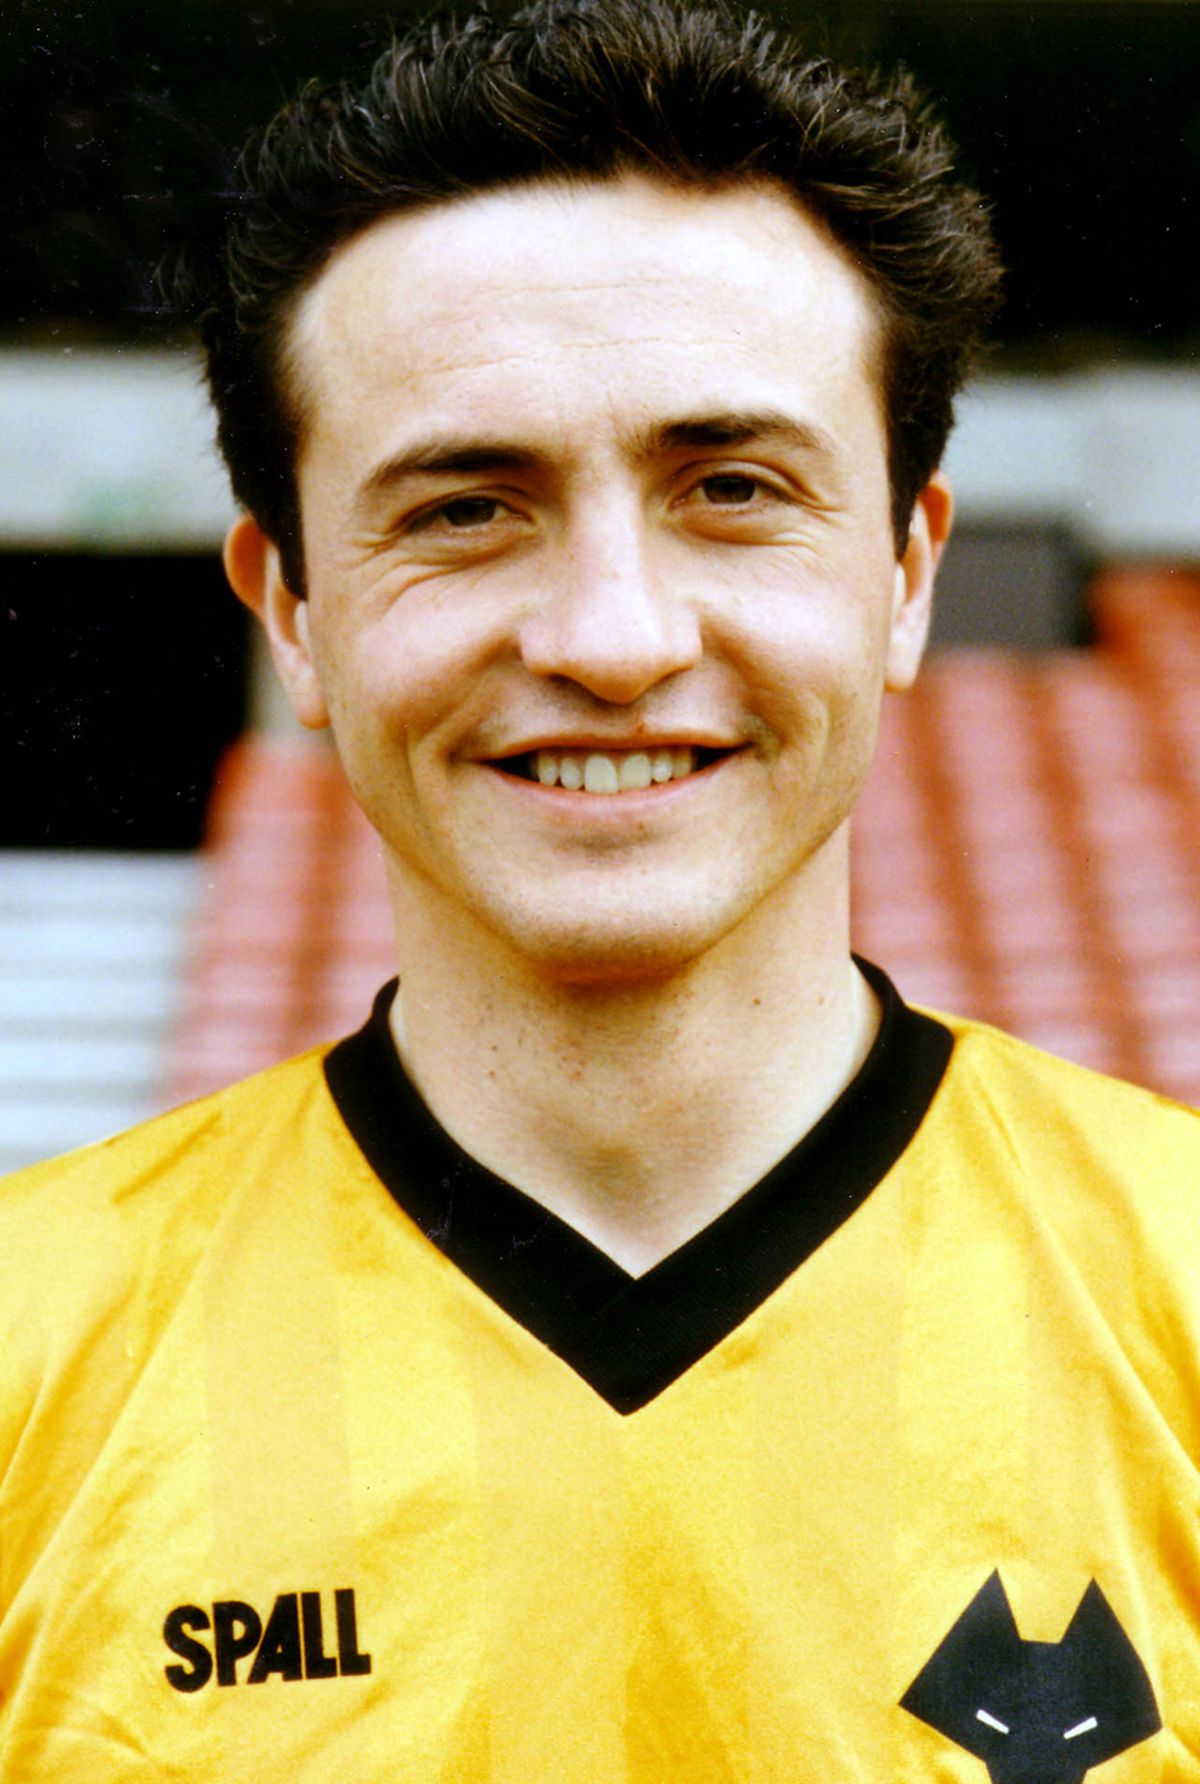 Phil Chard arrived at Molineux from Northampton, moving down the leagues to help Wolves' revival